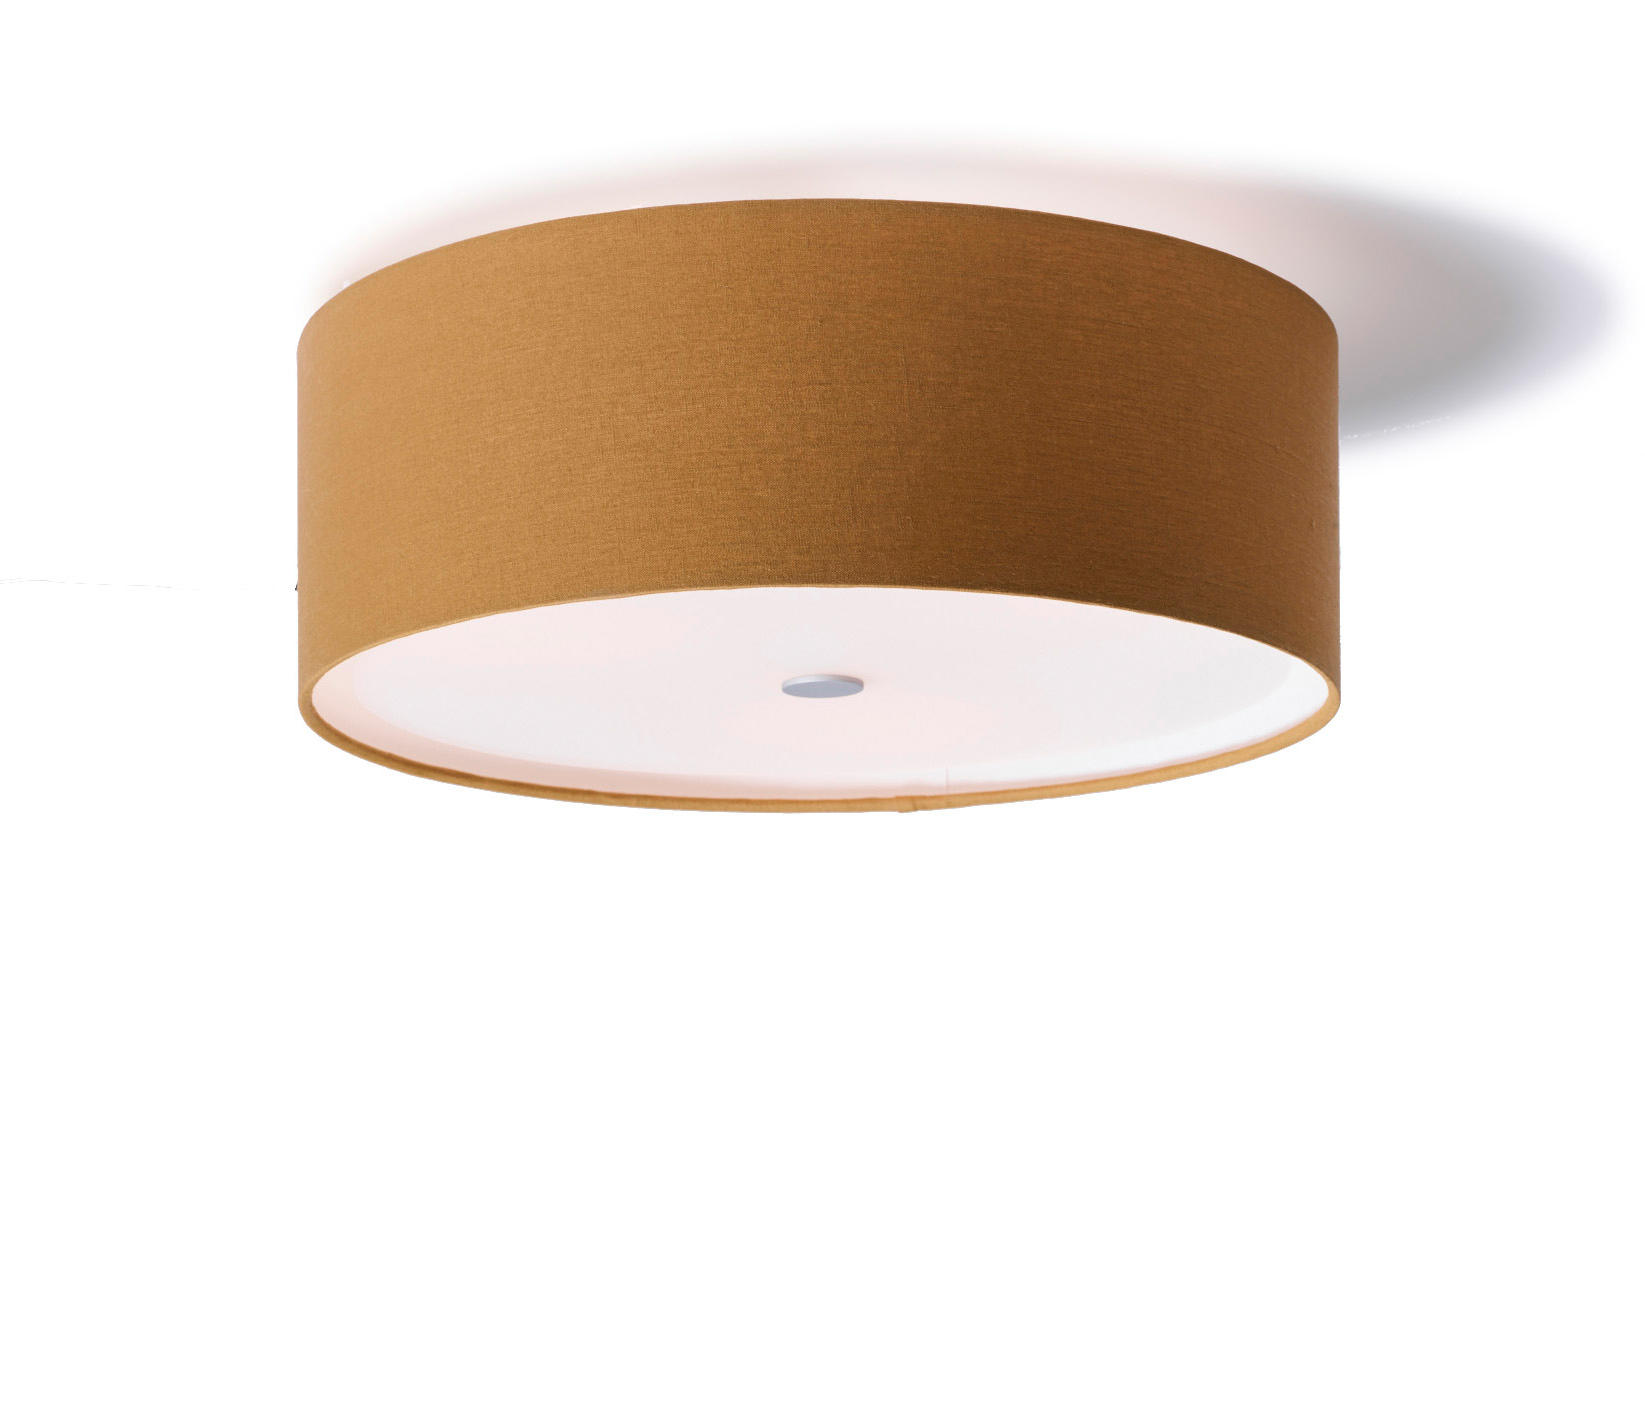 Plafondbeugel Lamp Sten Linum Ceiling Lamp General Lighting From Domus